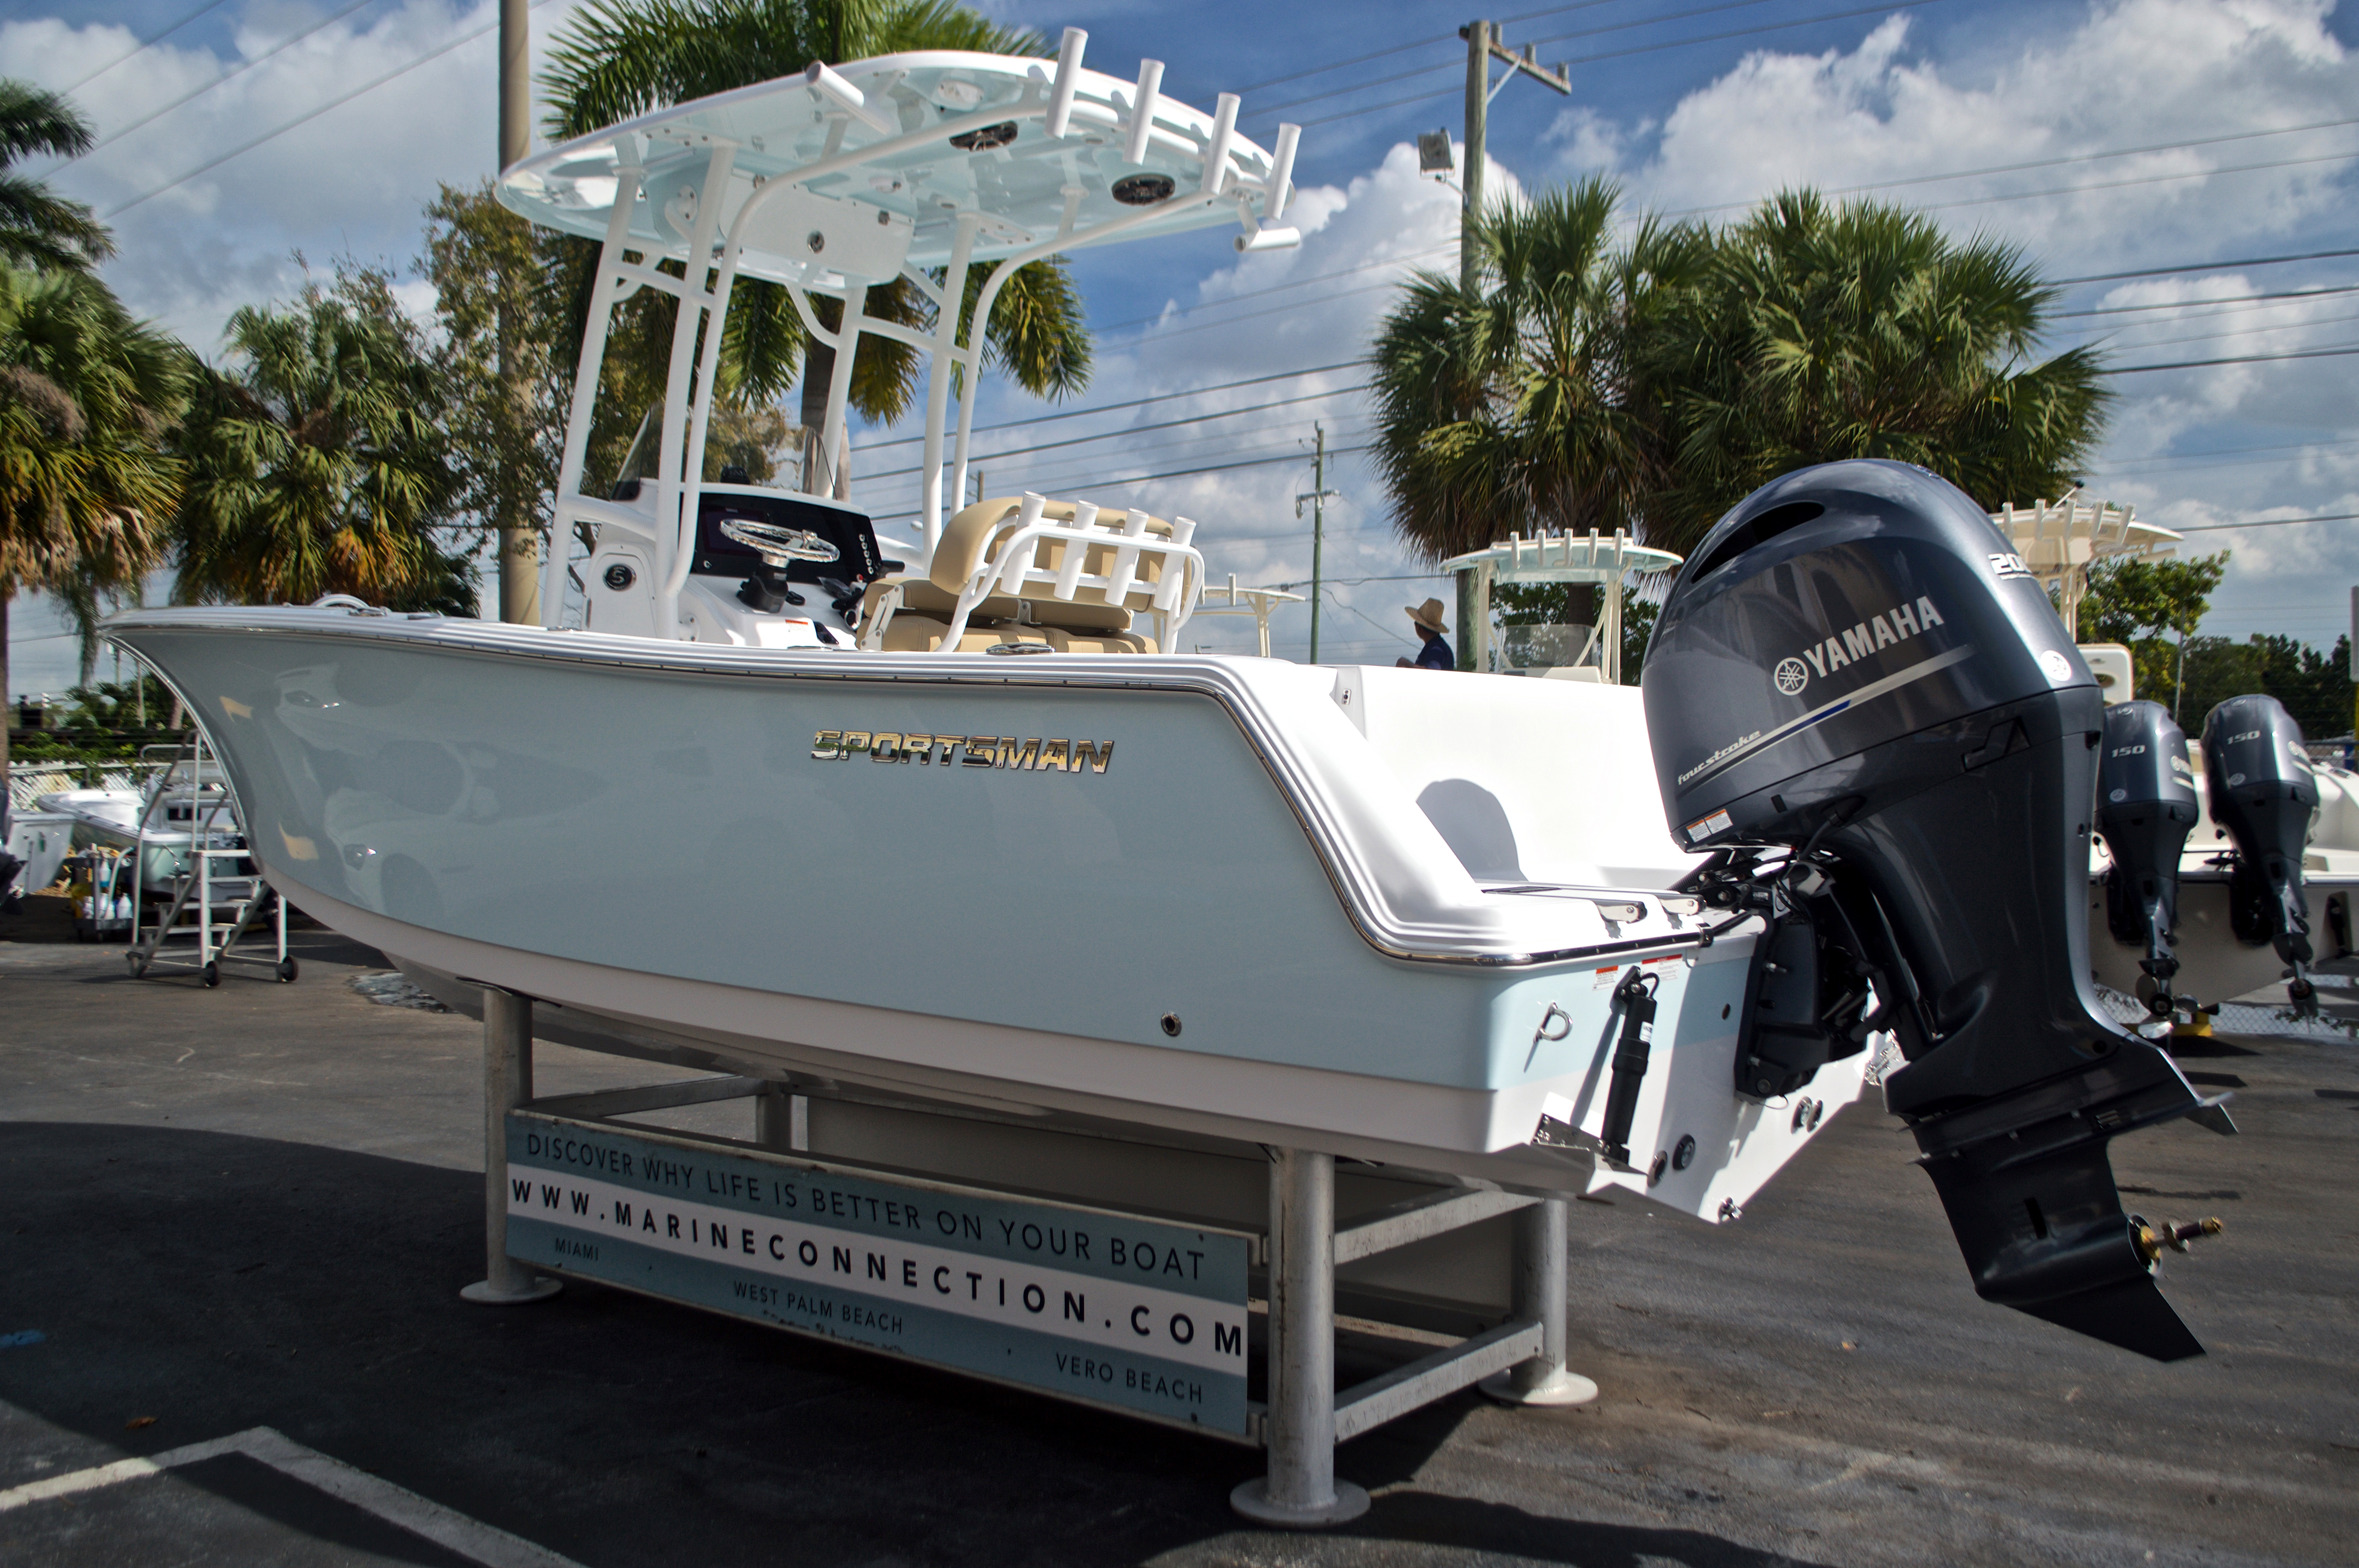 Thumbnail 6 for New 2017 Sportsman Open 232 Center Console boat for sale in West Palm Beach, FL